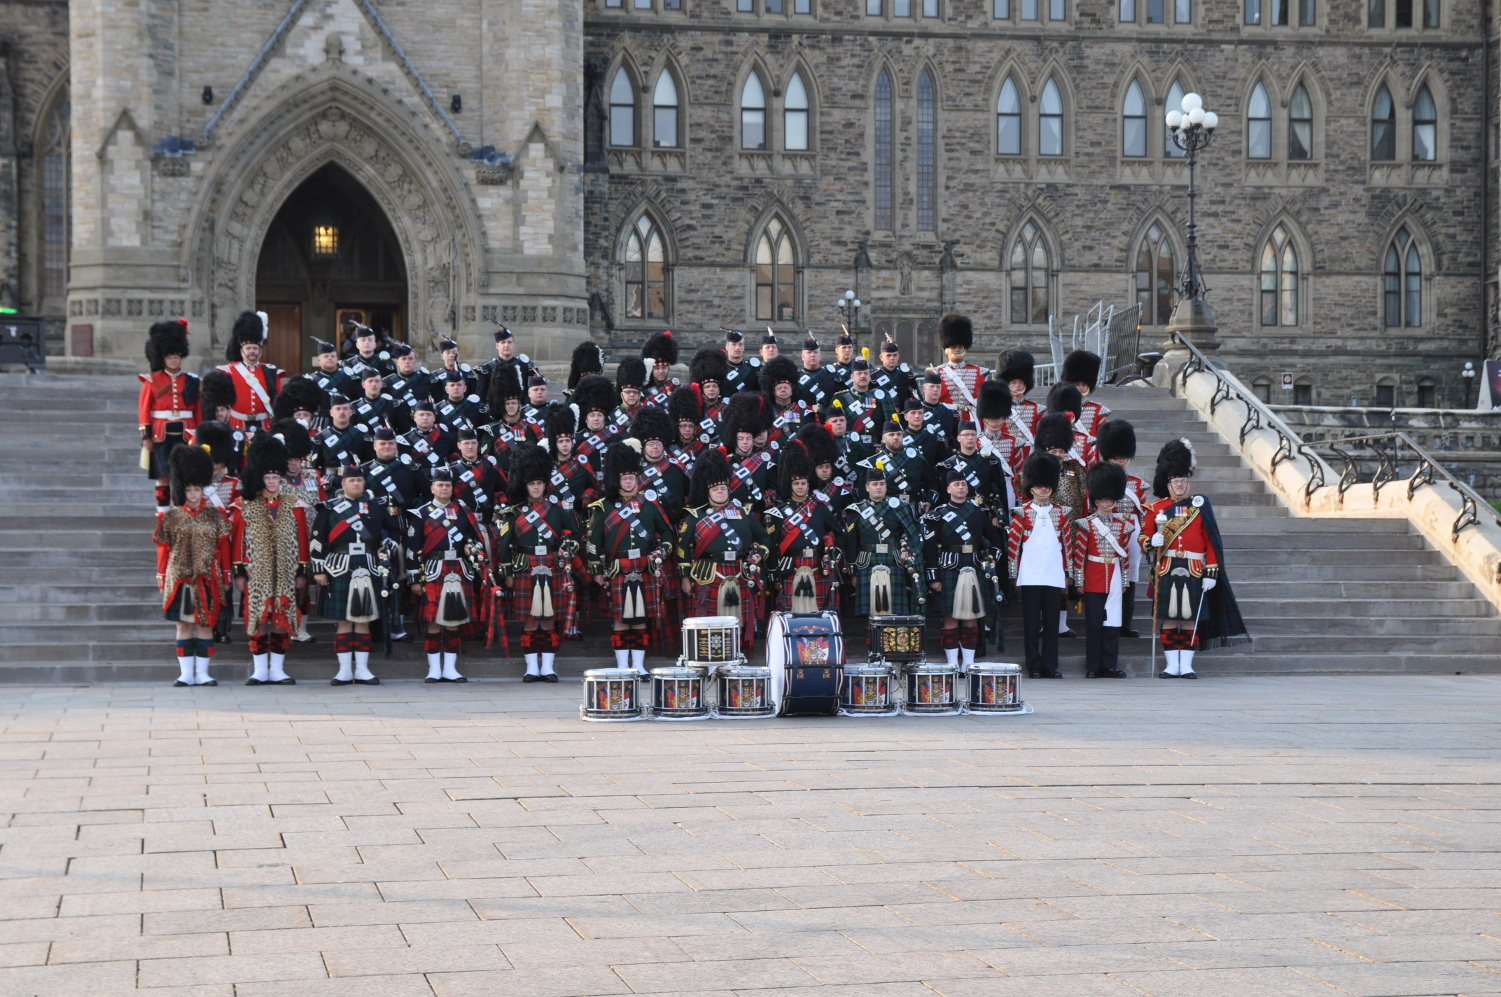 <b>4th Canadian Division Massed Pipes and Drums</b><br>